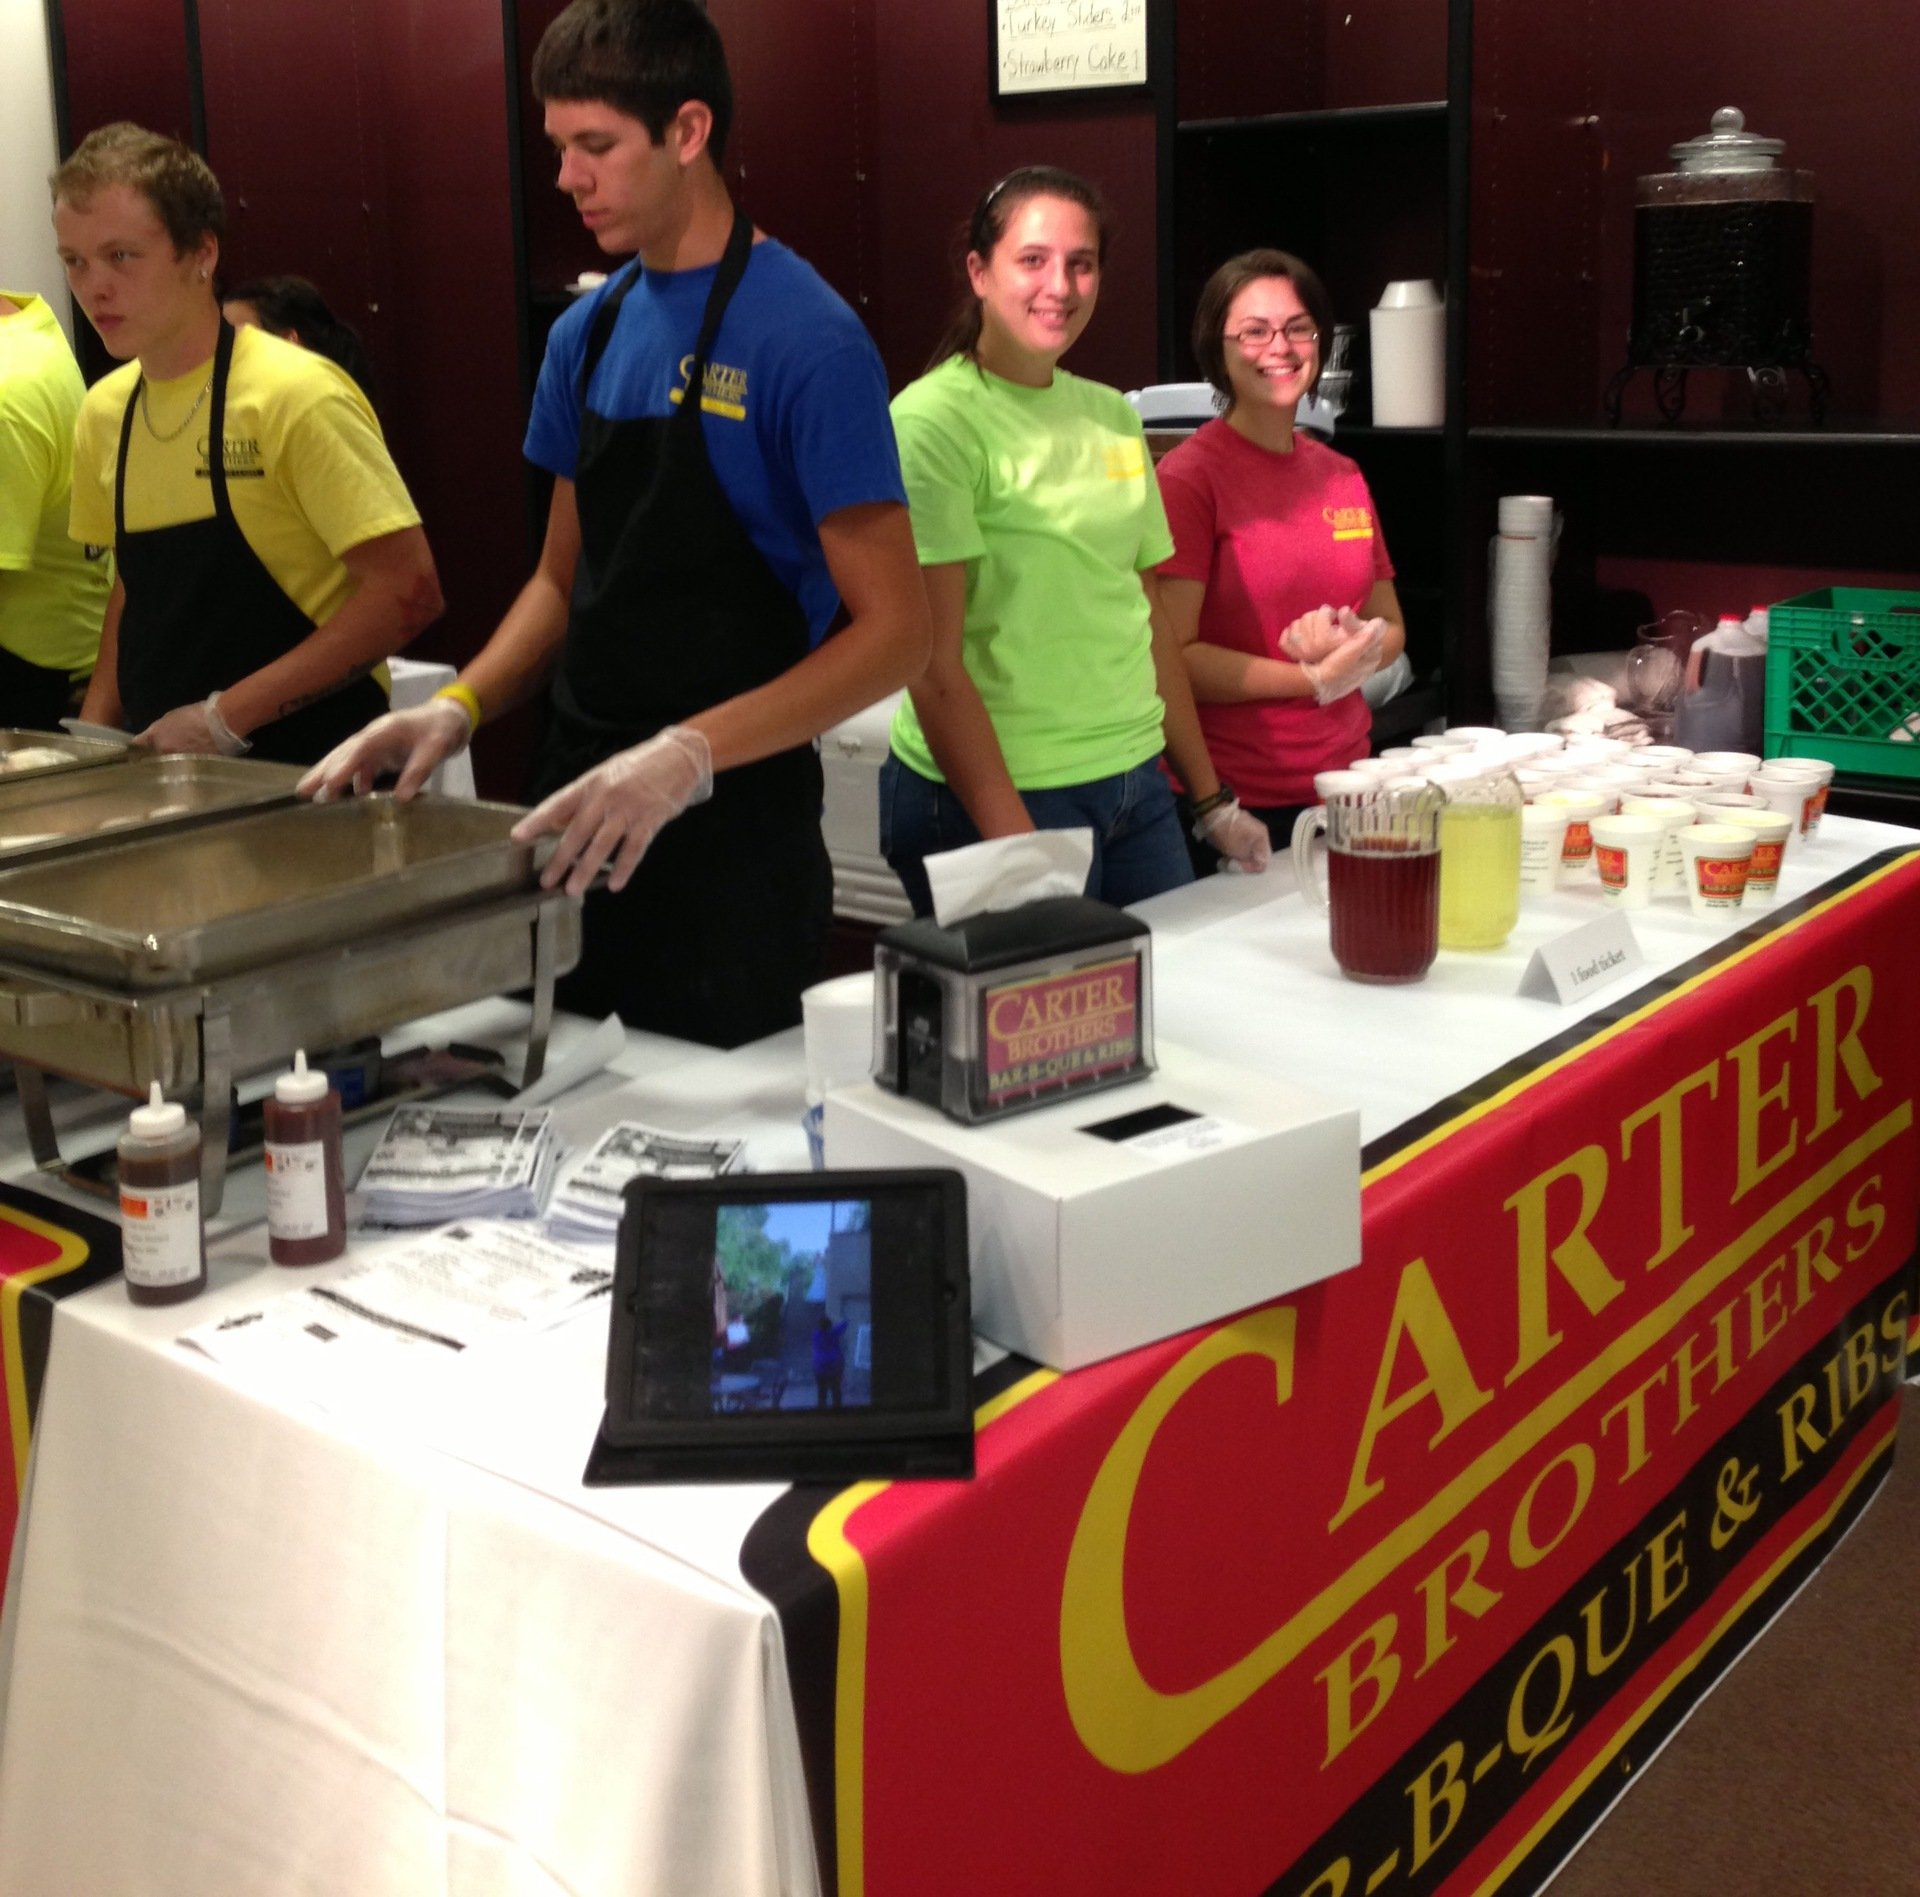 Food contest organised by carter brothers in High Point, NC